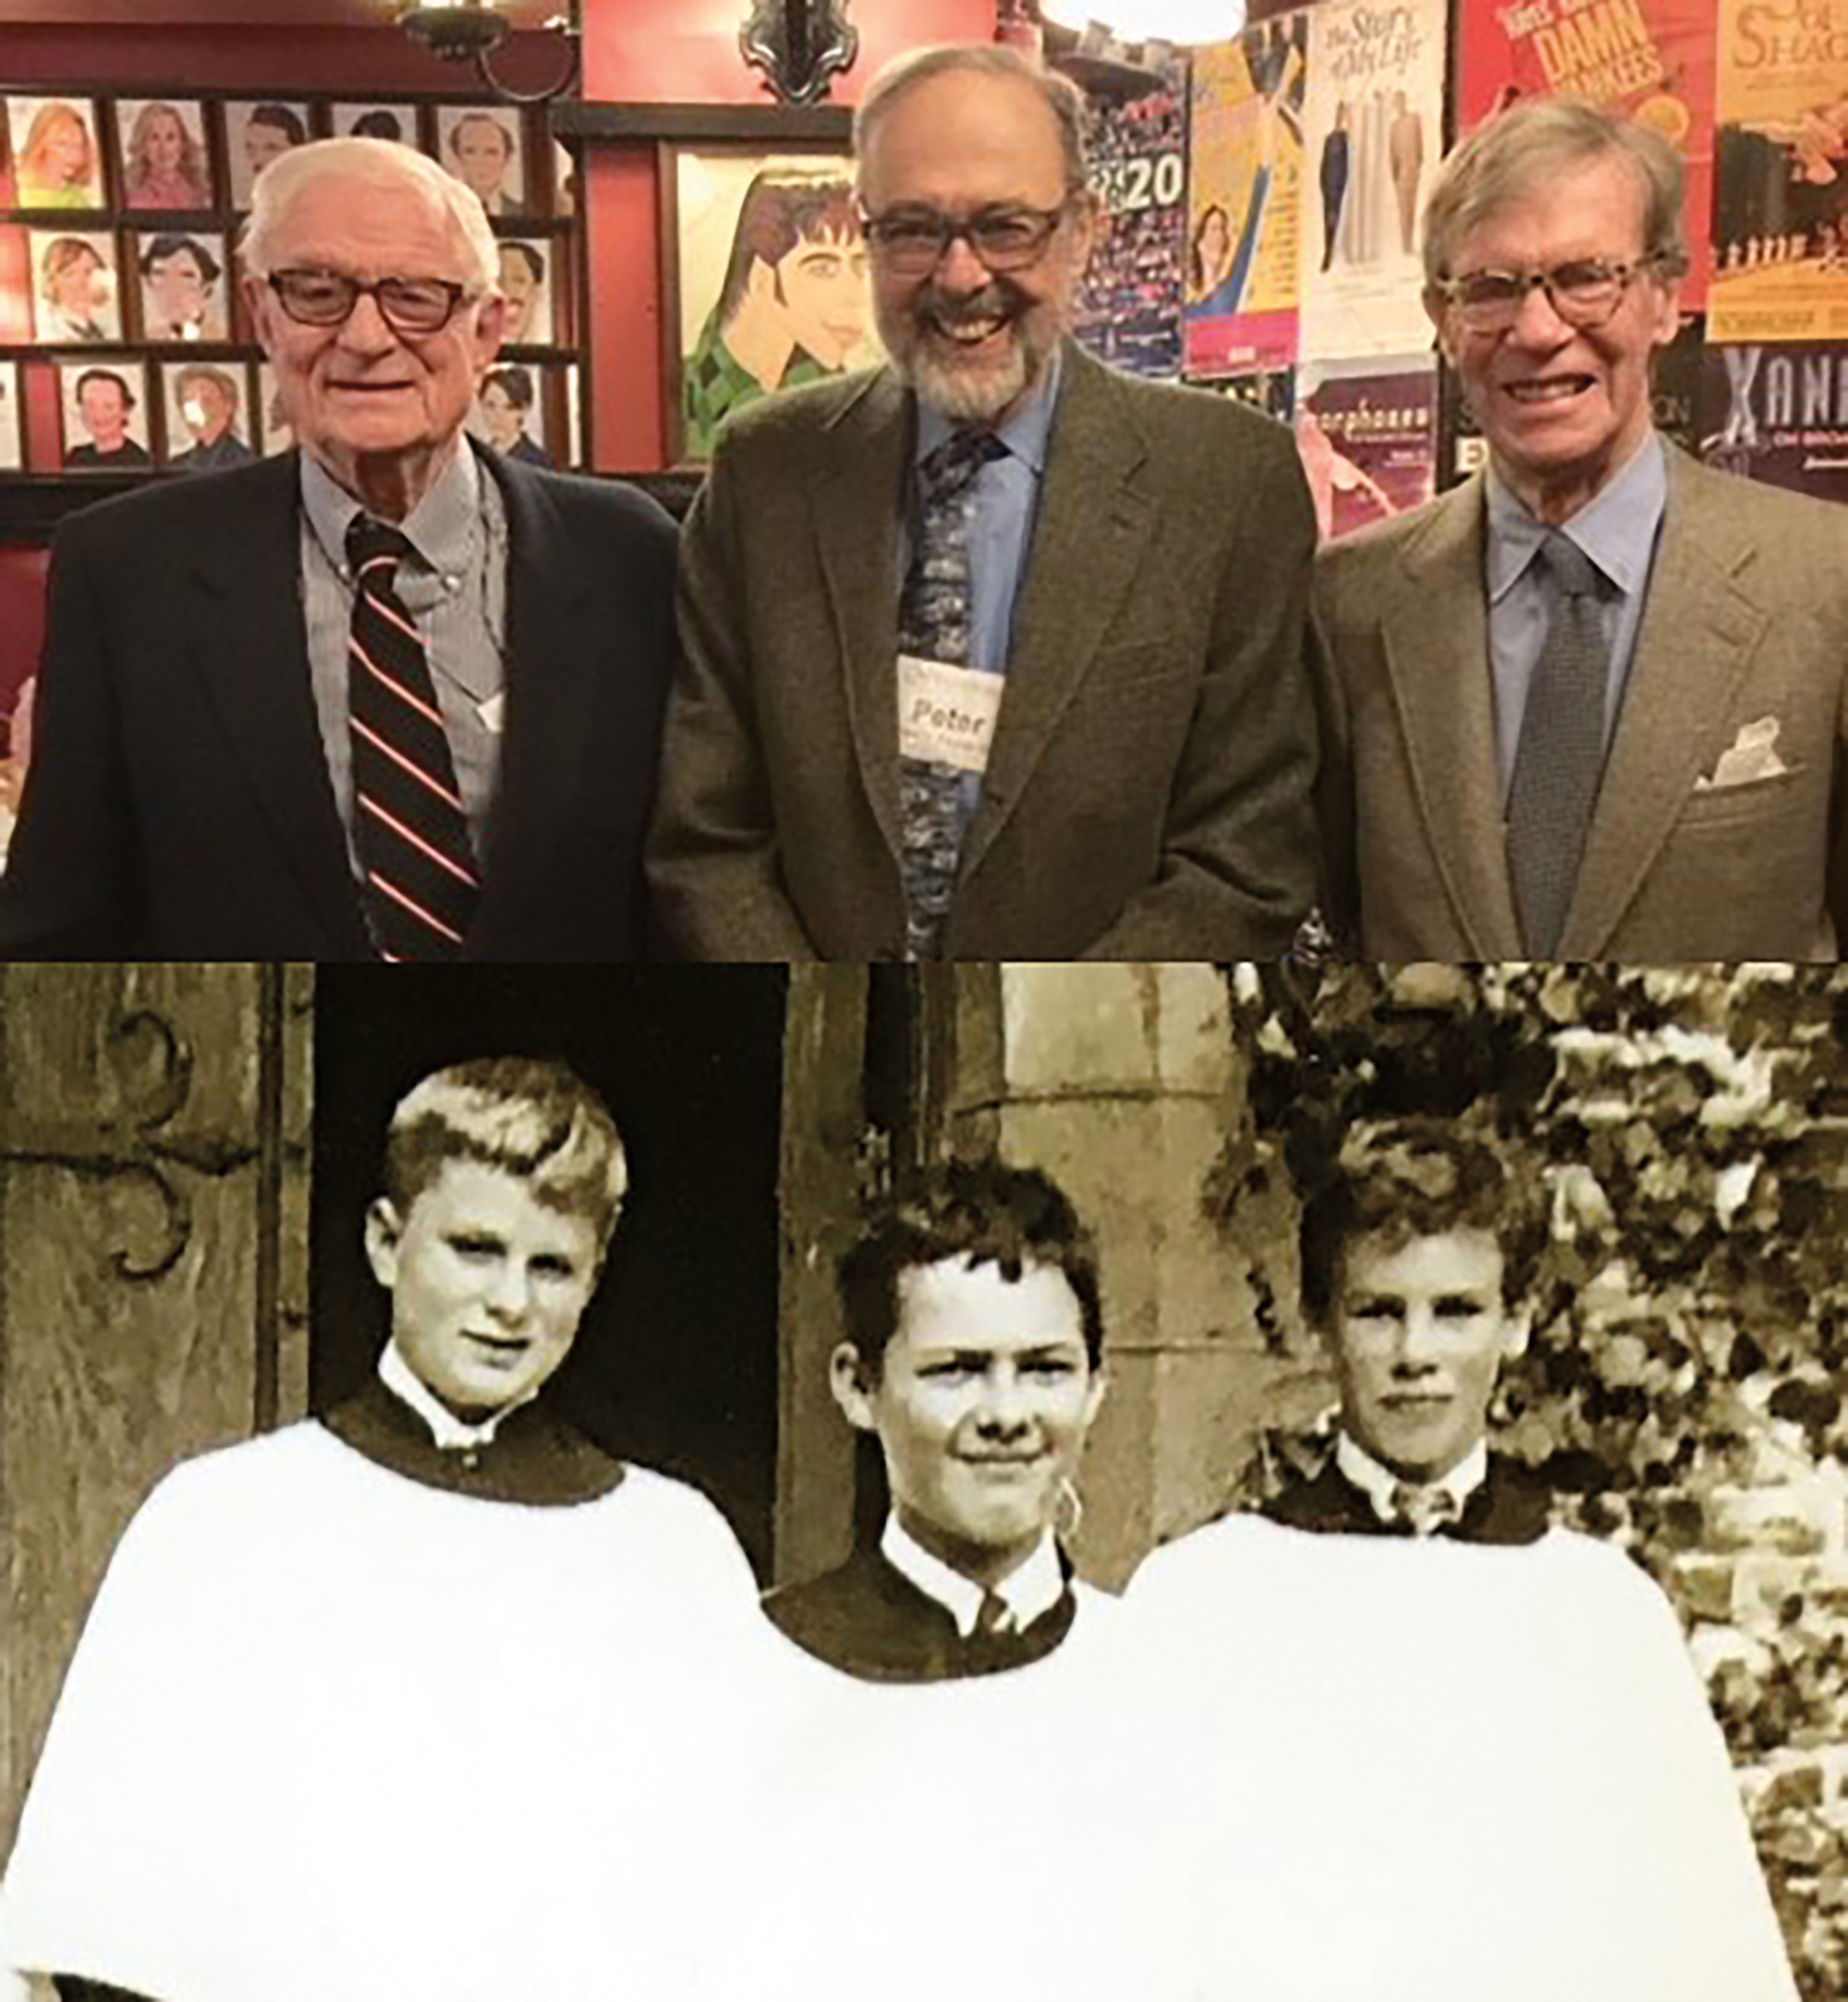 Longtime friends (l. to r.) Nick Platt '53, Peter Swords '53, and Jim Righter '54 have taken photos together over the years (always in the same order) since they were young choristers in Millville.